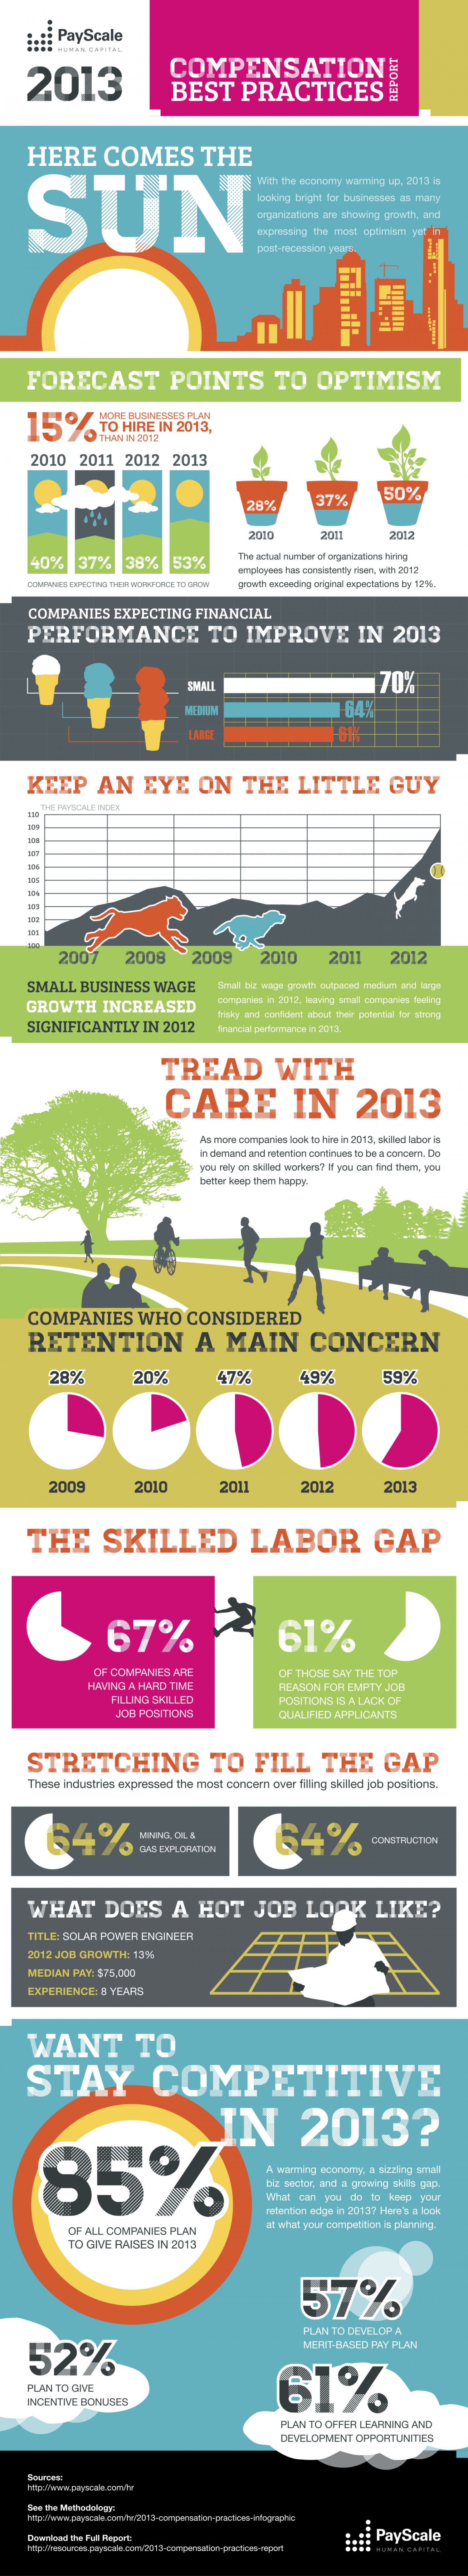 The PayScale 2013 Compensation Best Practices Report Infographic